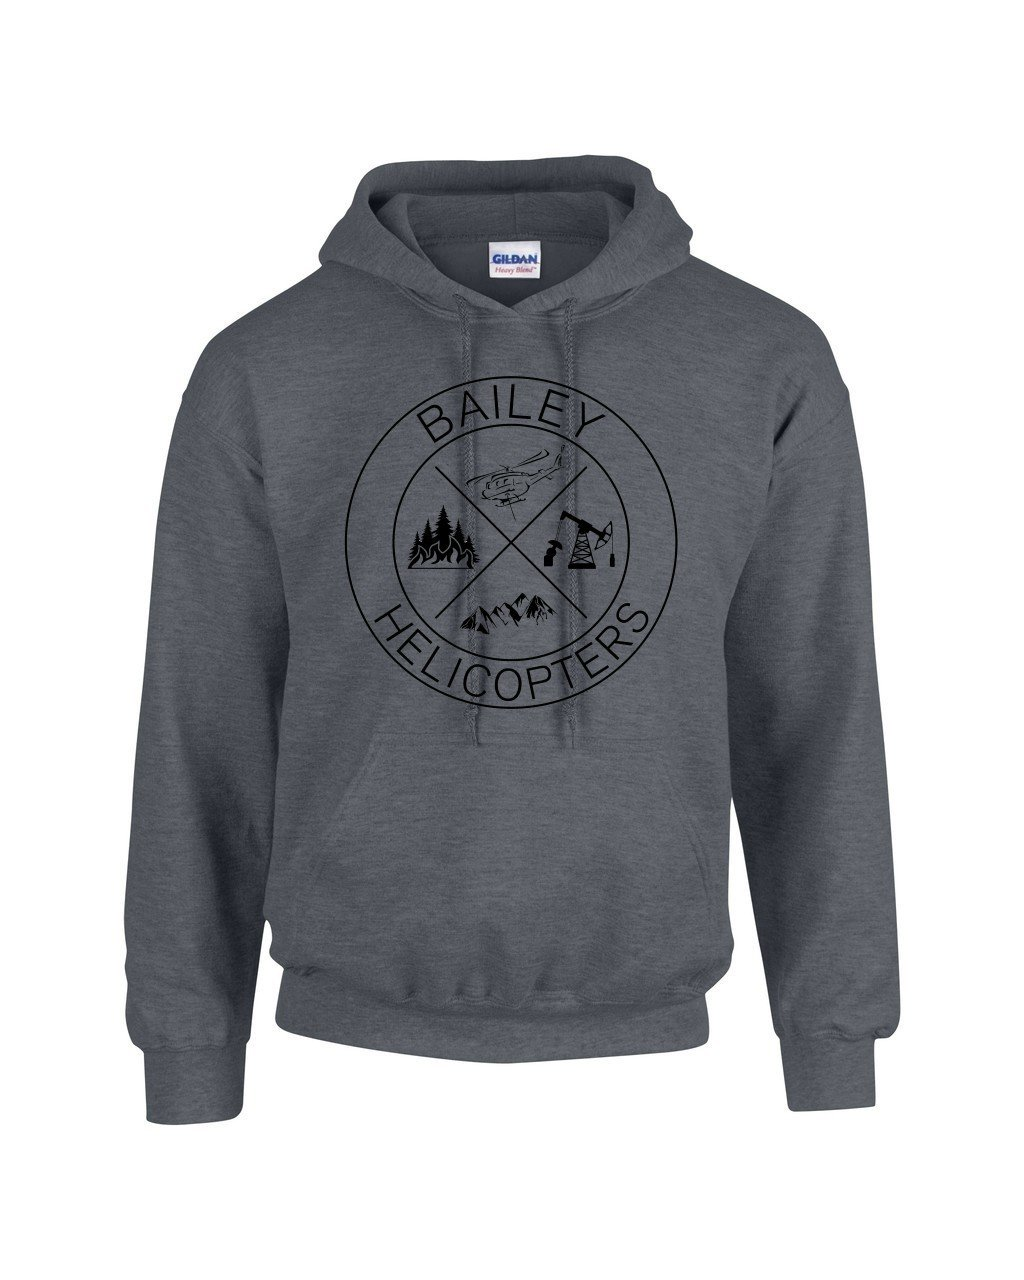 Adult Hooded Sweat Shirt Dark Heather - Helicopter